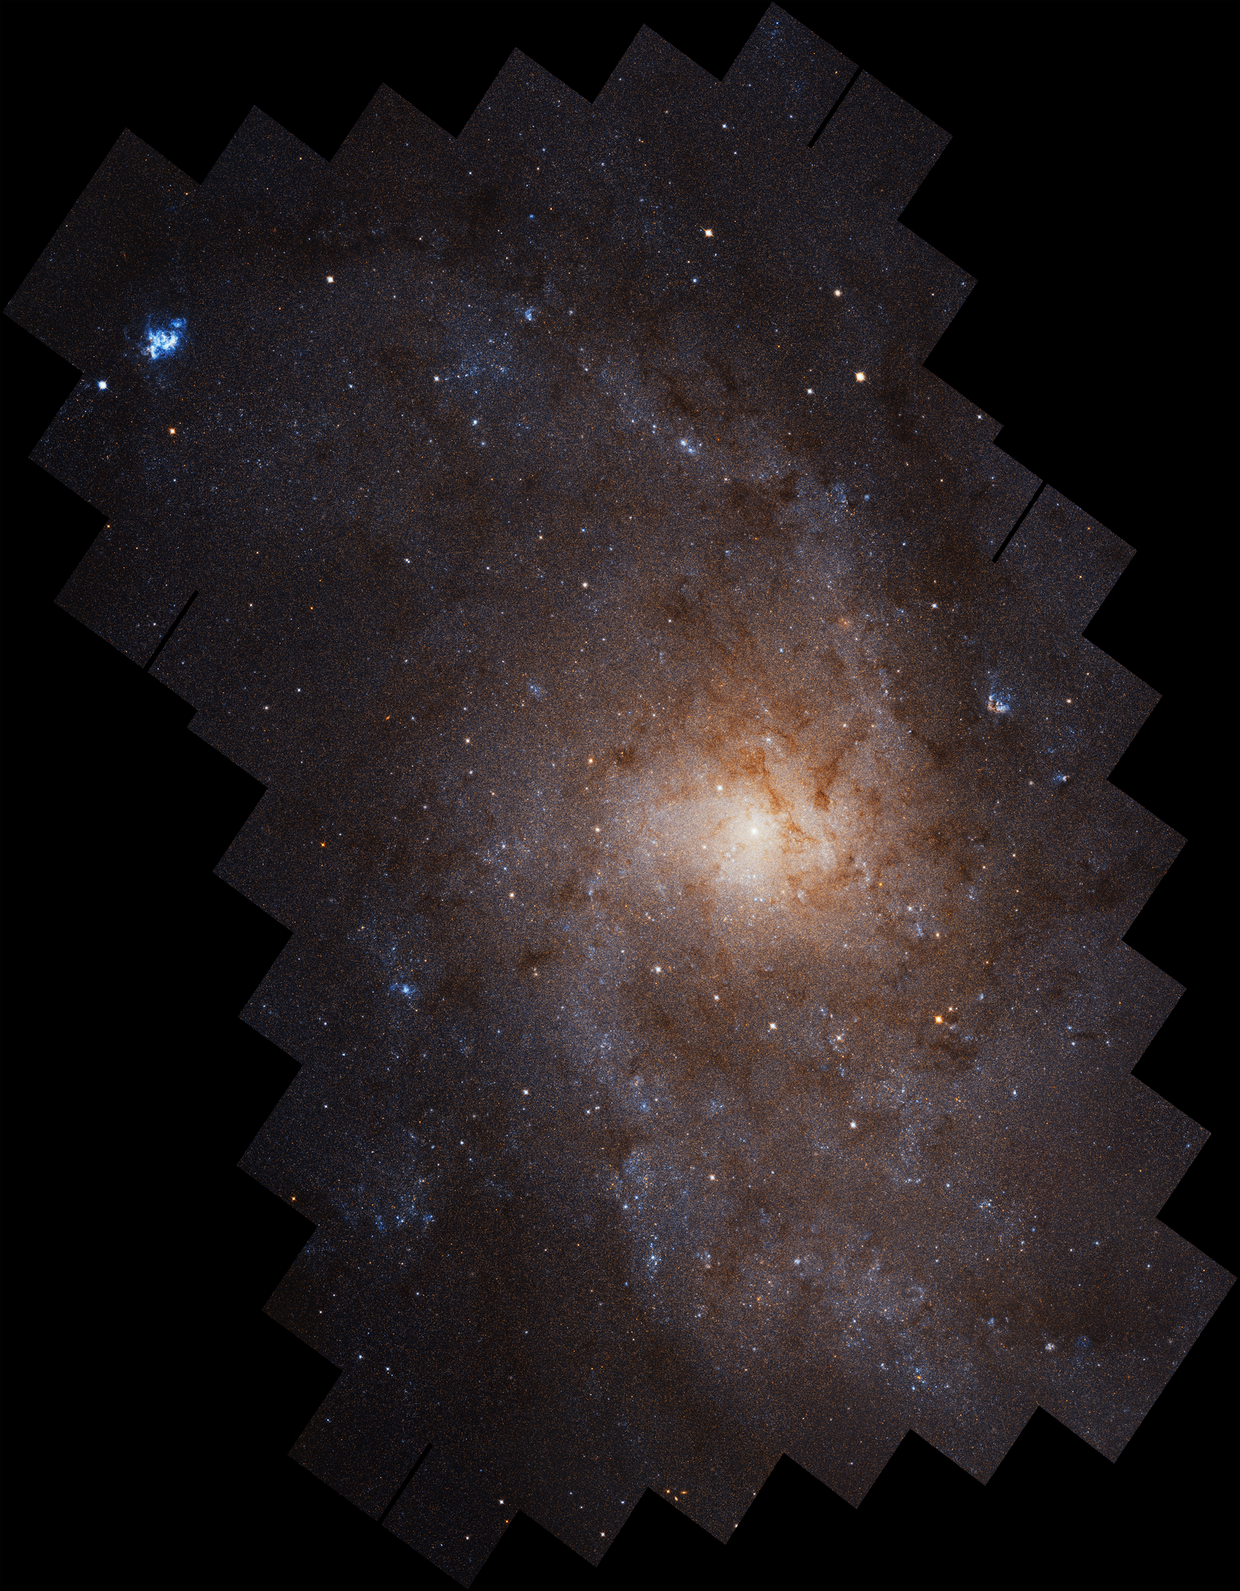 NASA's Hubble Takes Incredible 665-Million Pixel Image of Triangulum Galaxy